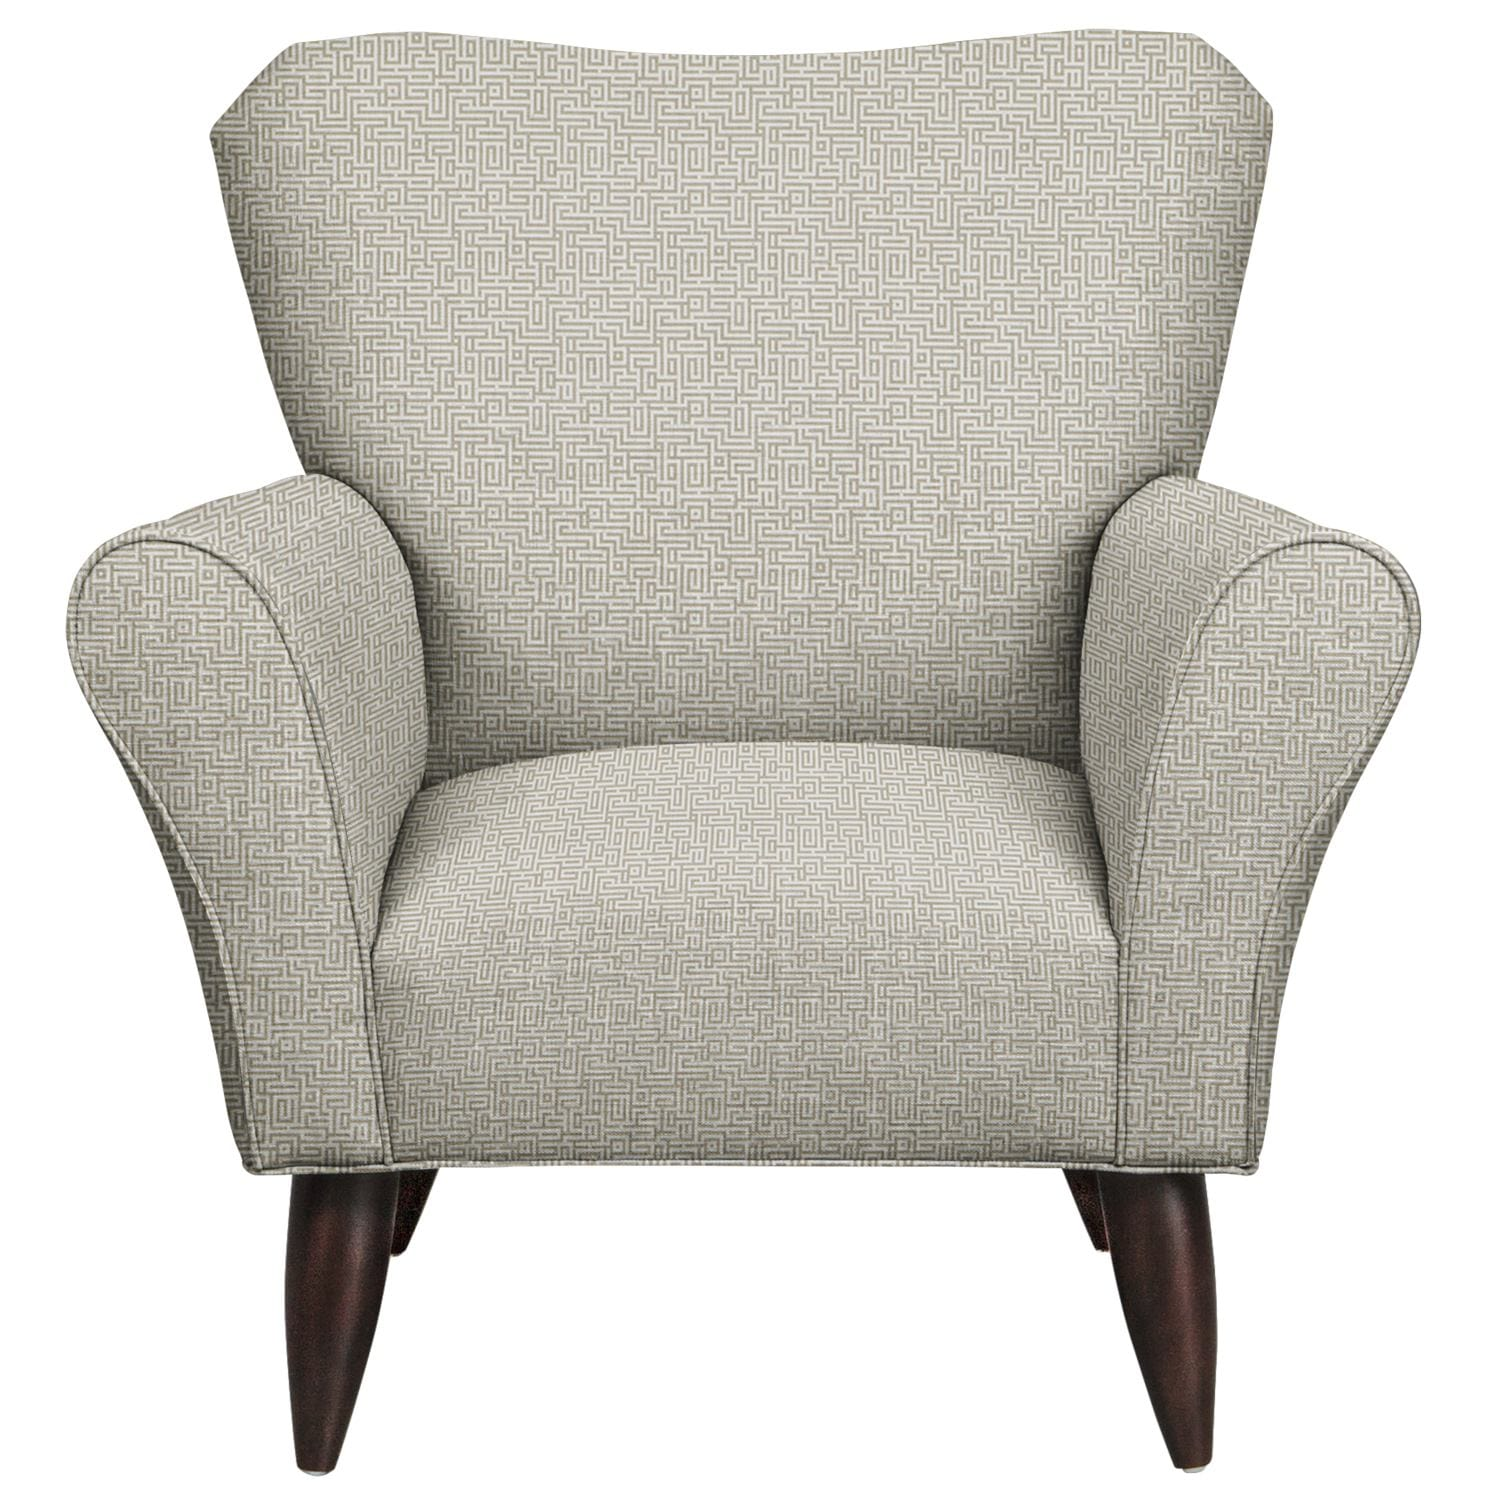 Living Room Furniture - Jessie Chair w/ Interlochen Slate Fabric